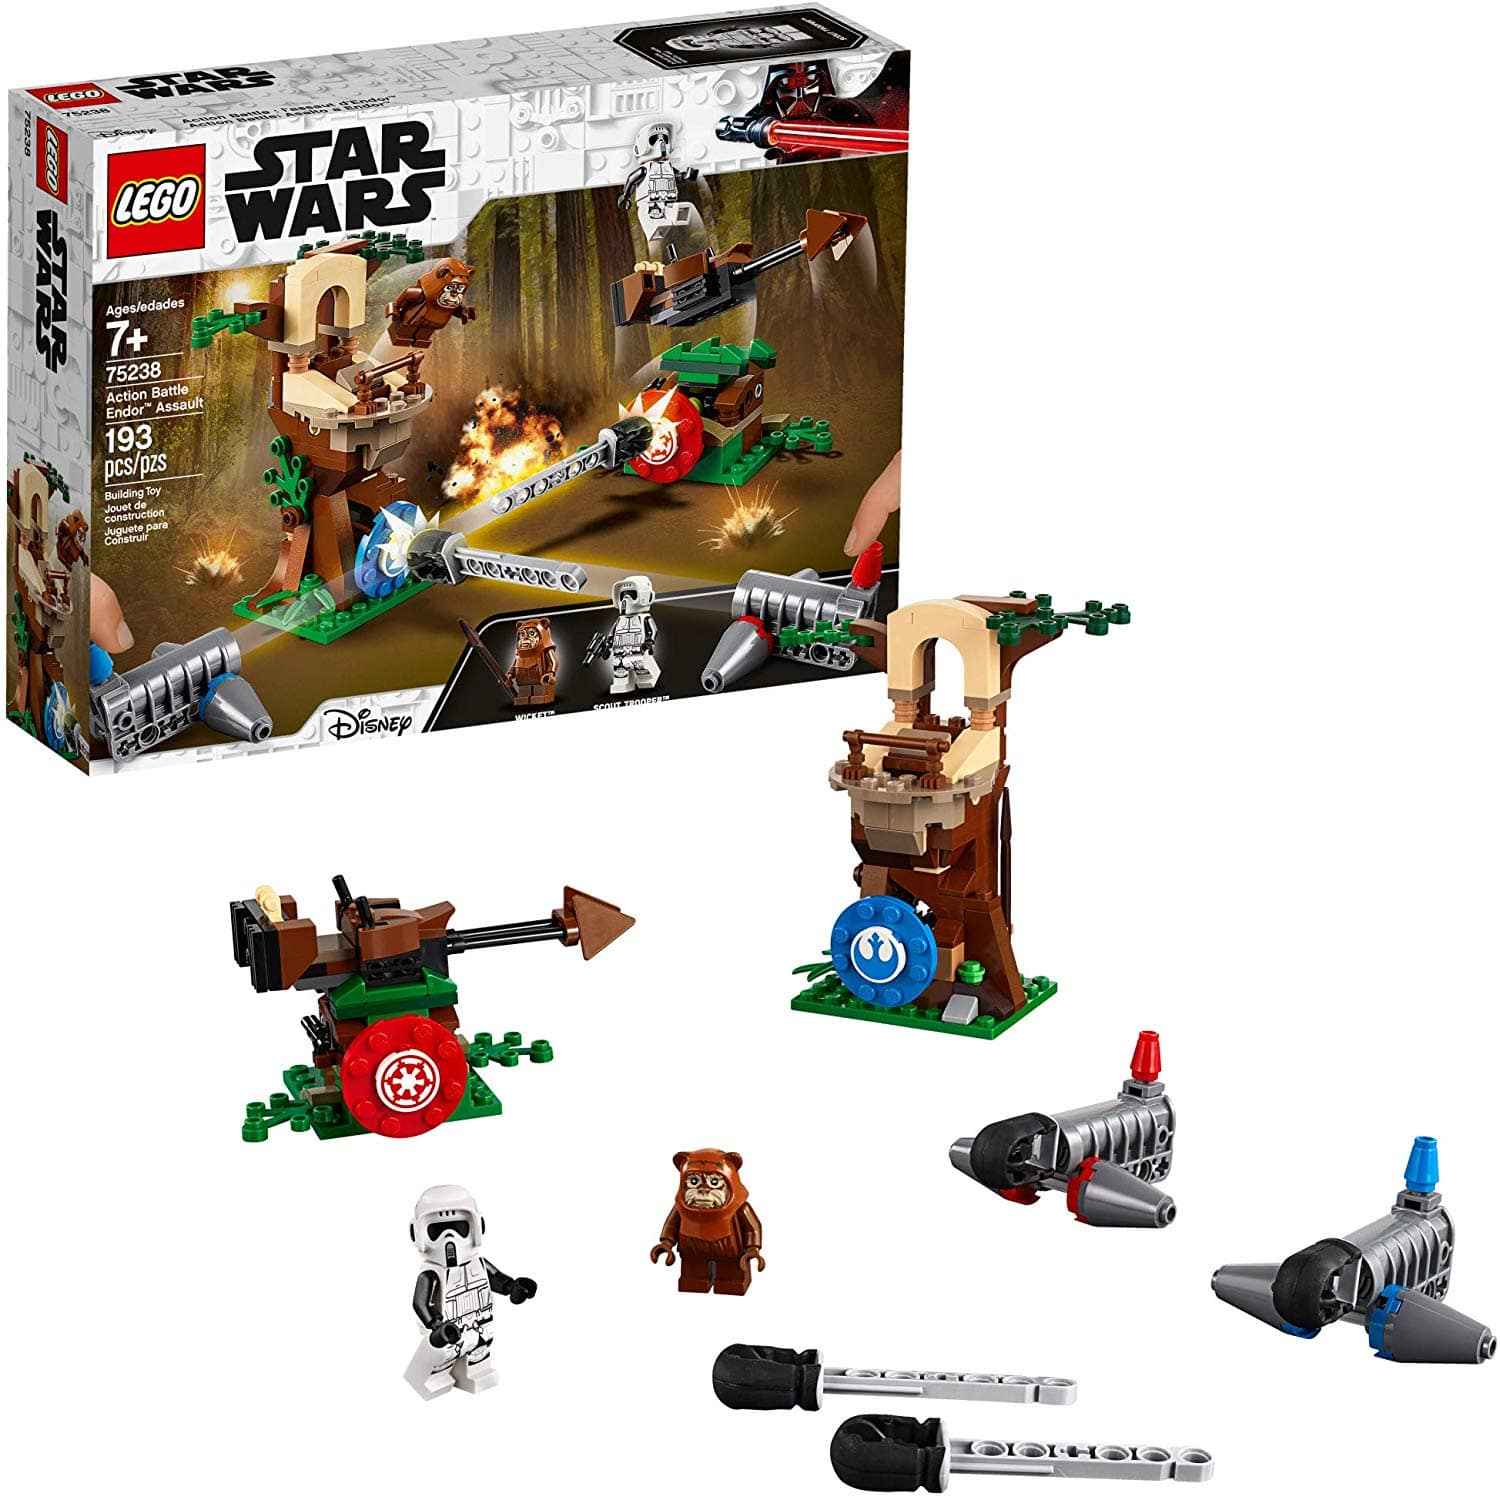 LEGO Star Wars Action Battle Endor Assault Building Kit (75238) $21.87 + Free Shipping w/ Prime